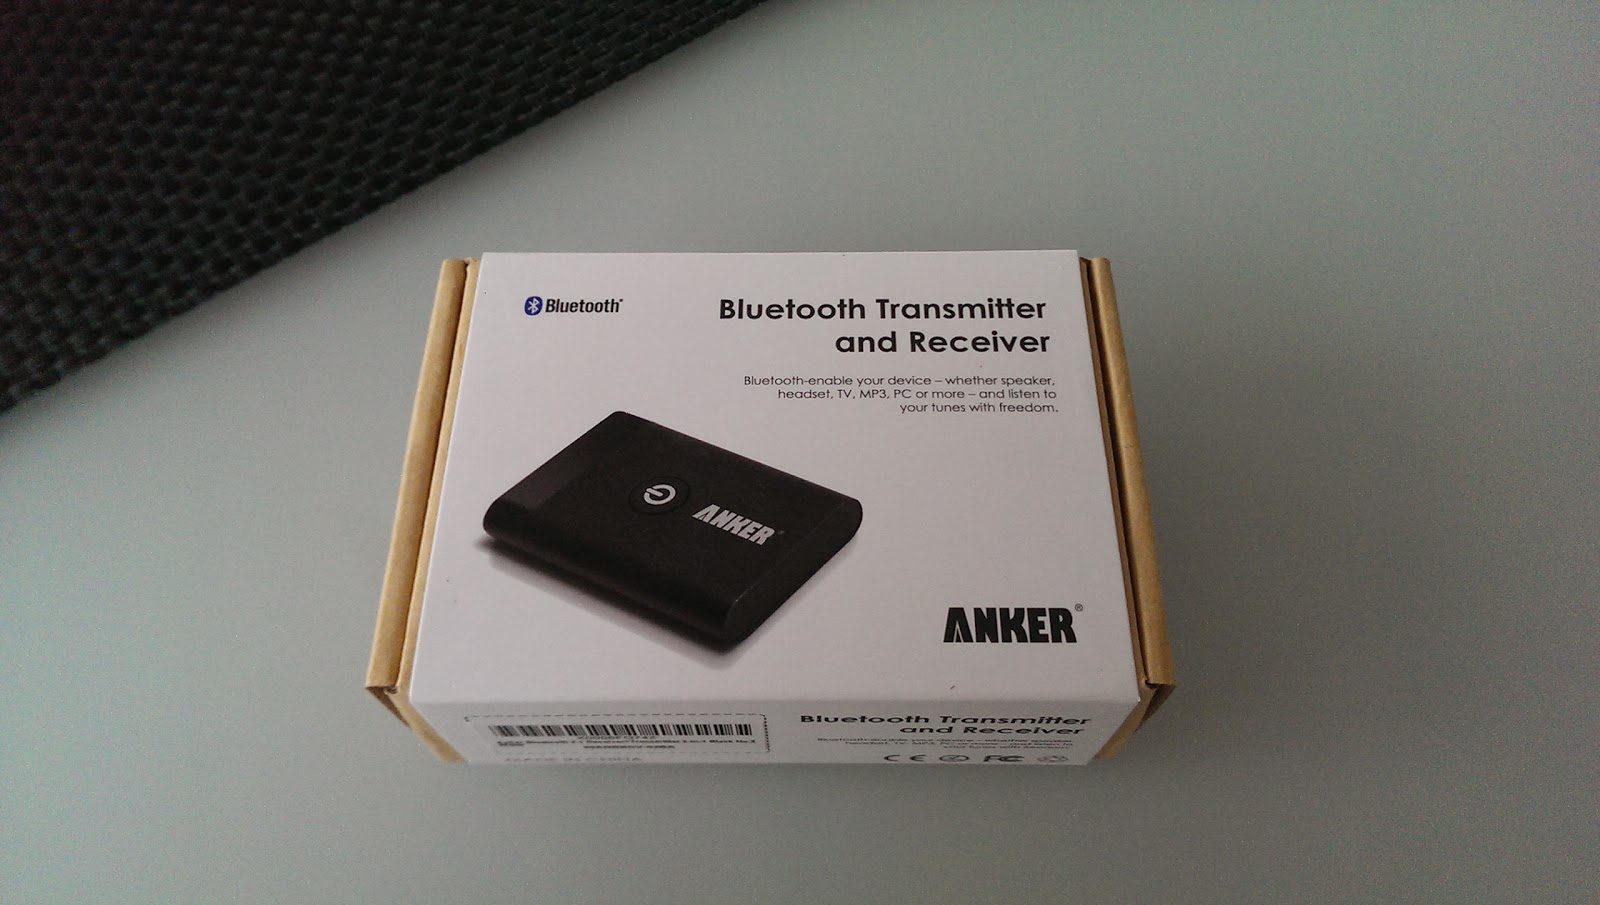 die neuesten produkte im test anker bluetooth transmitter. Black Bedroom Furniture Sets. Home Design Ideas